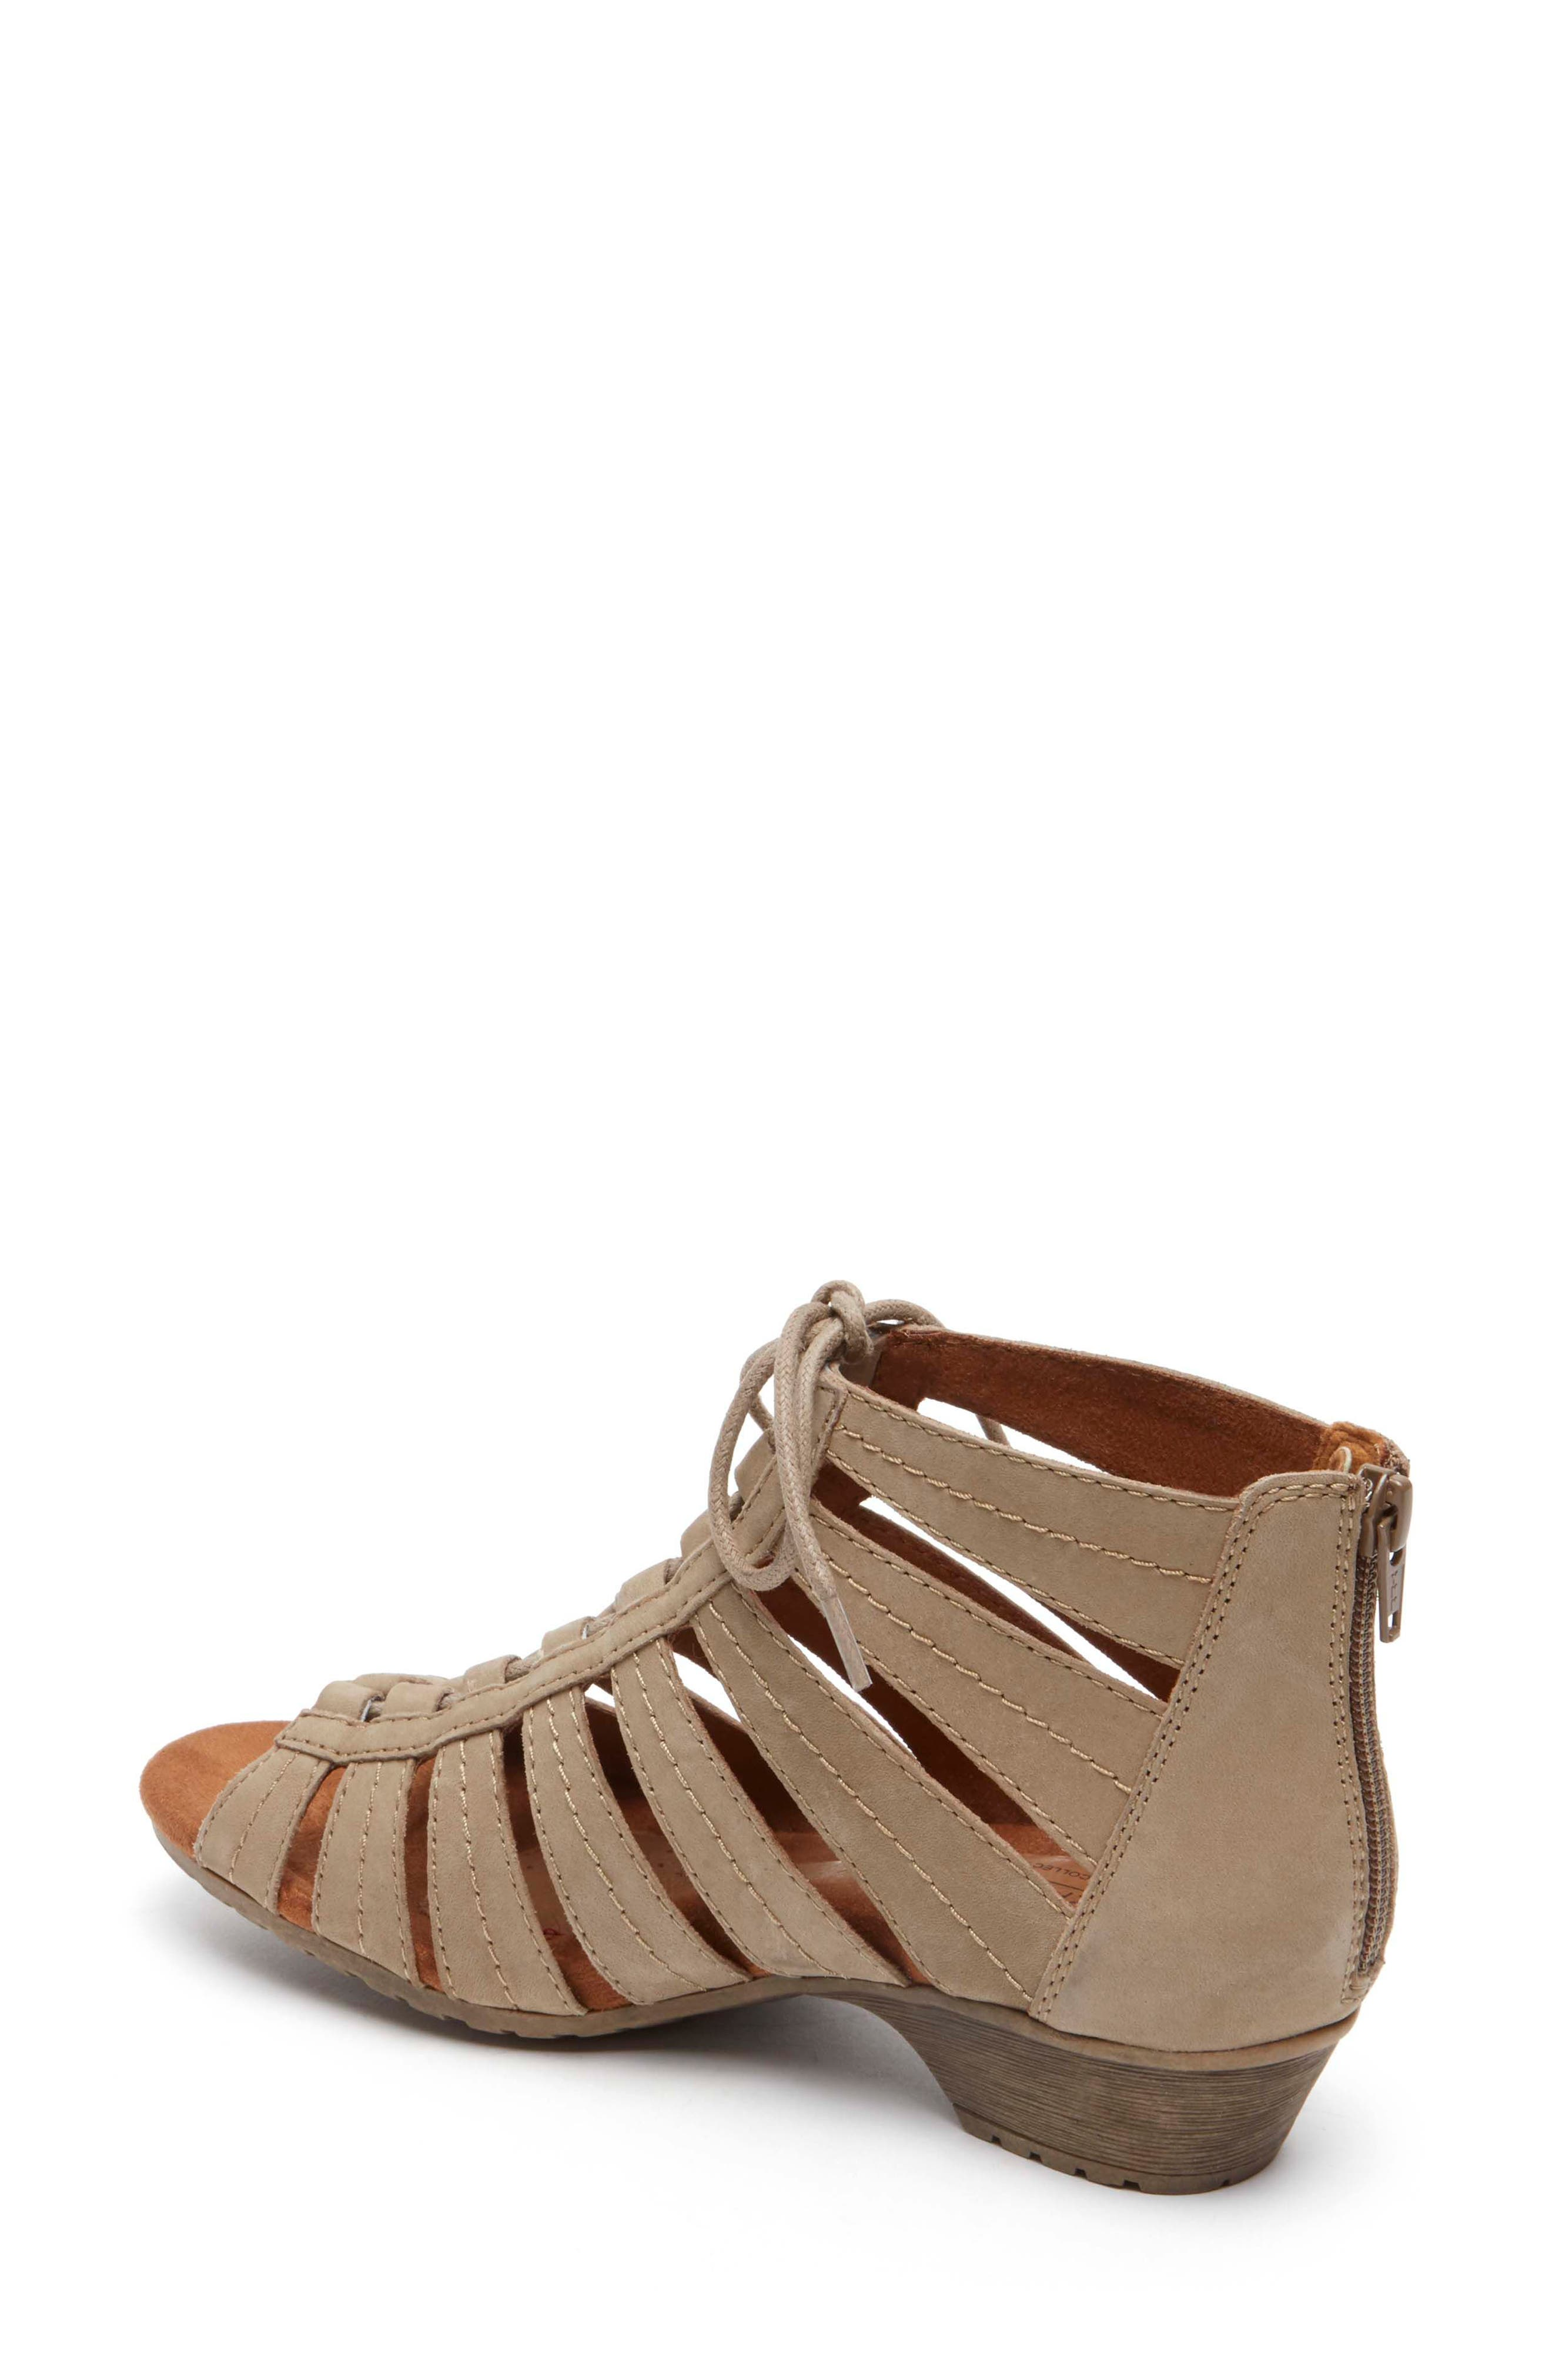 'Gabby' Lace-Up Sandal,                             Alternate thumbnail 9, color,